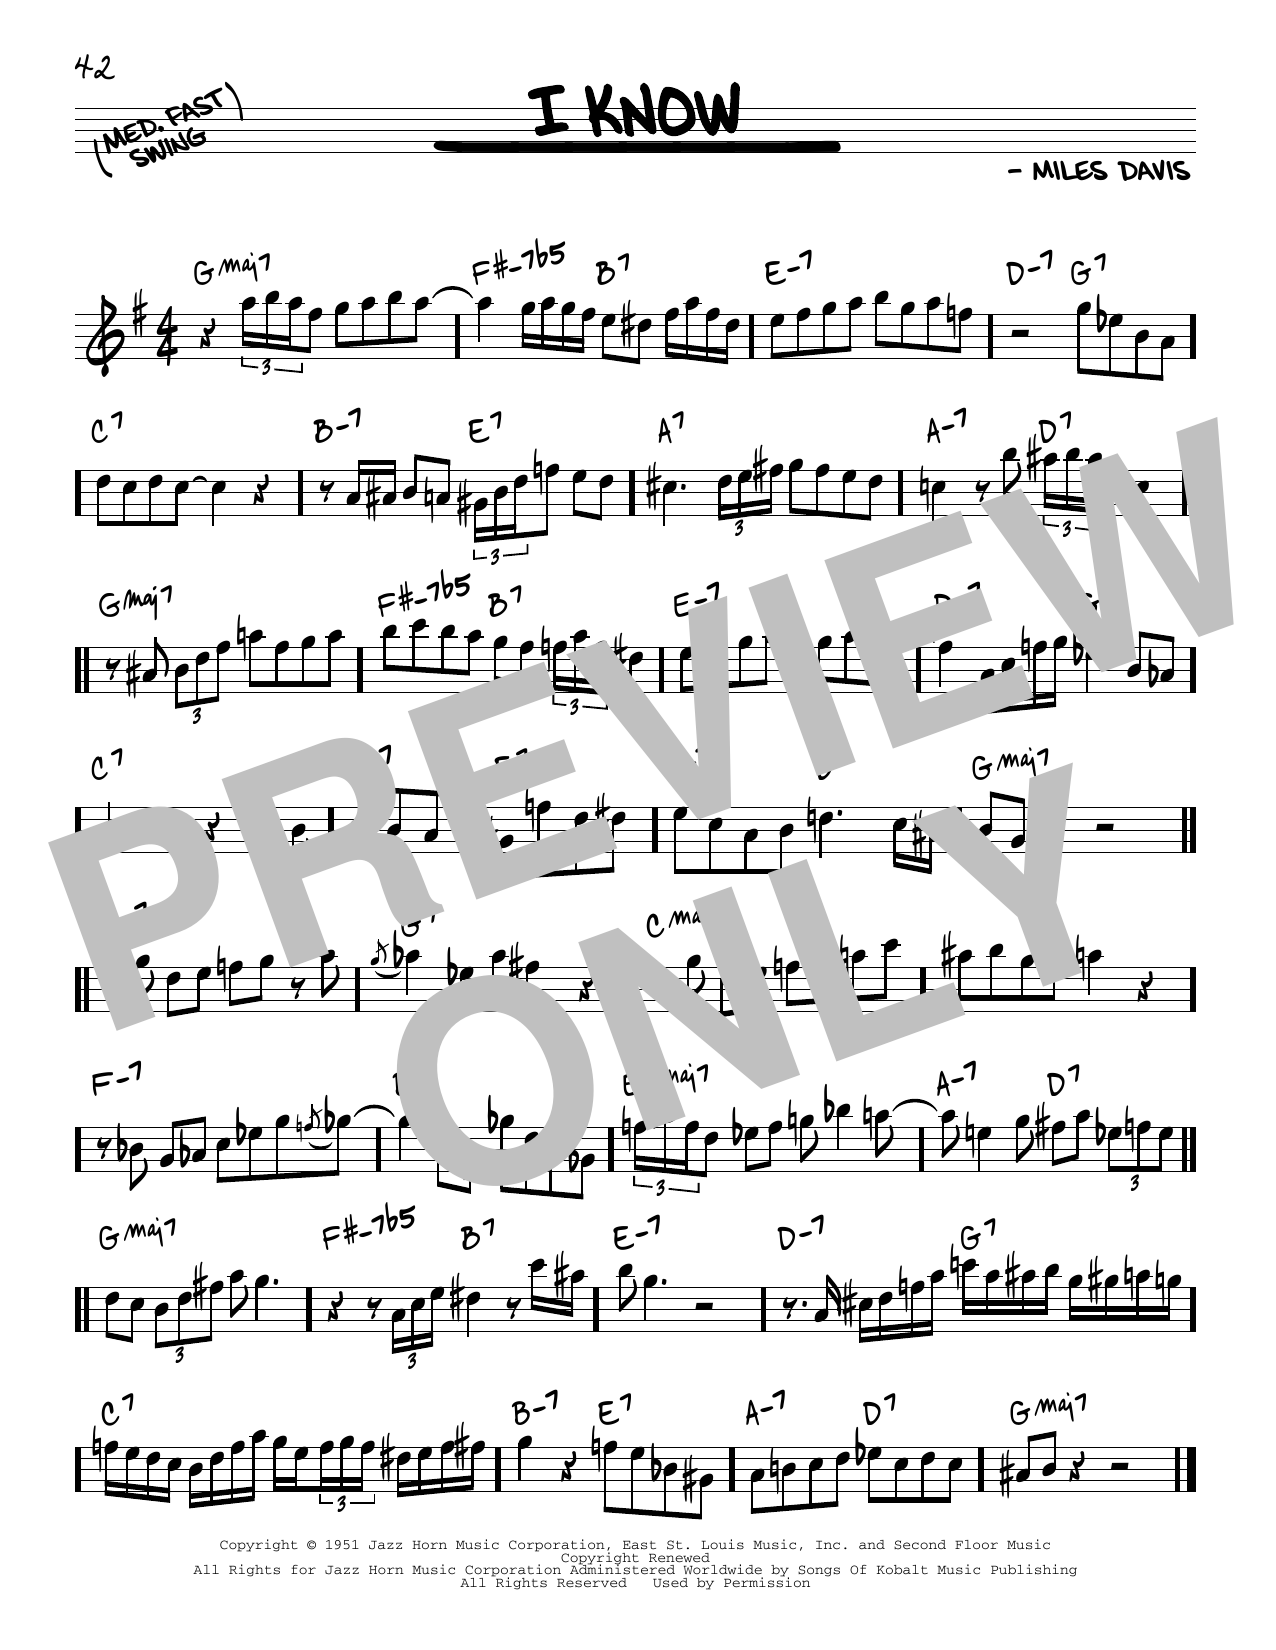 Miles Davis I Know sheet music notes and chords. Download Printable PDF.